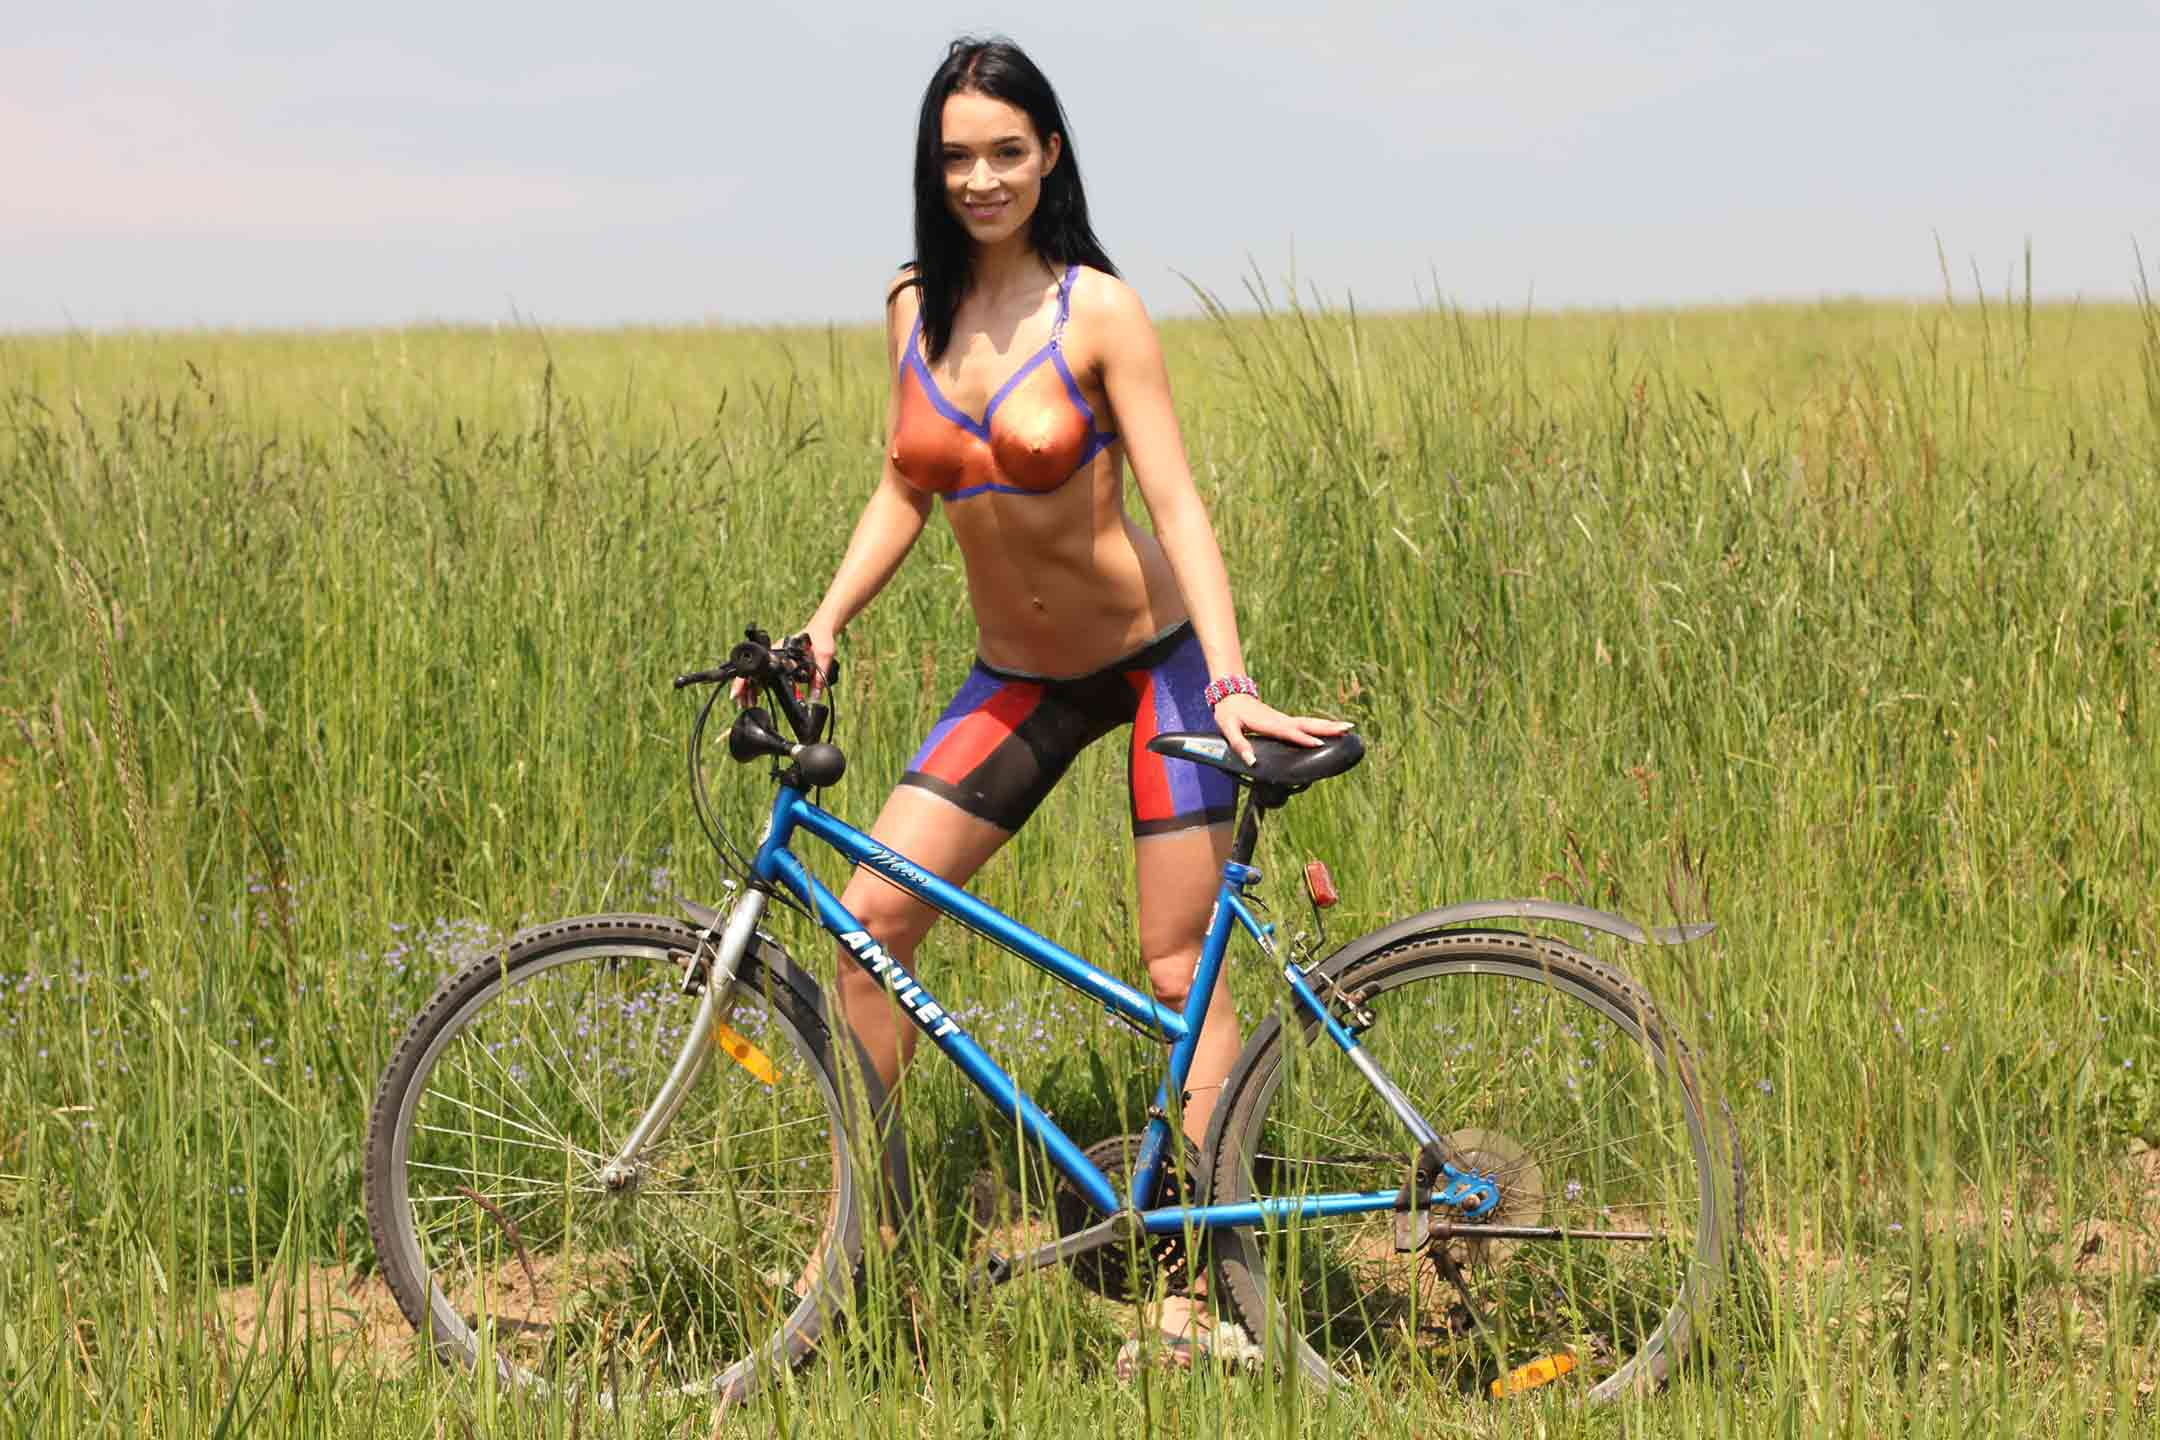 Images of naked girls - Exercise Girls - Bodypainted Gwen bicyling